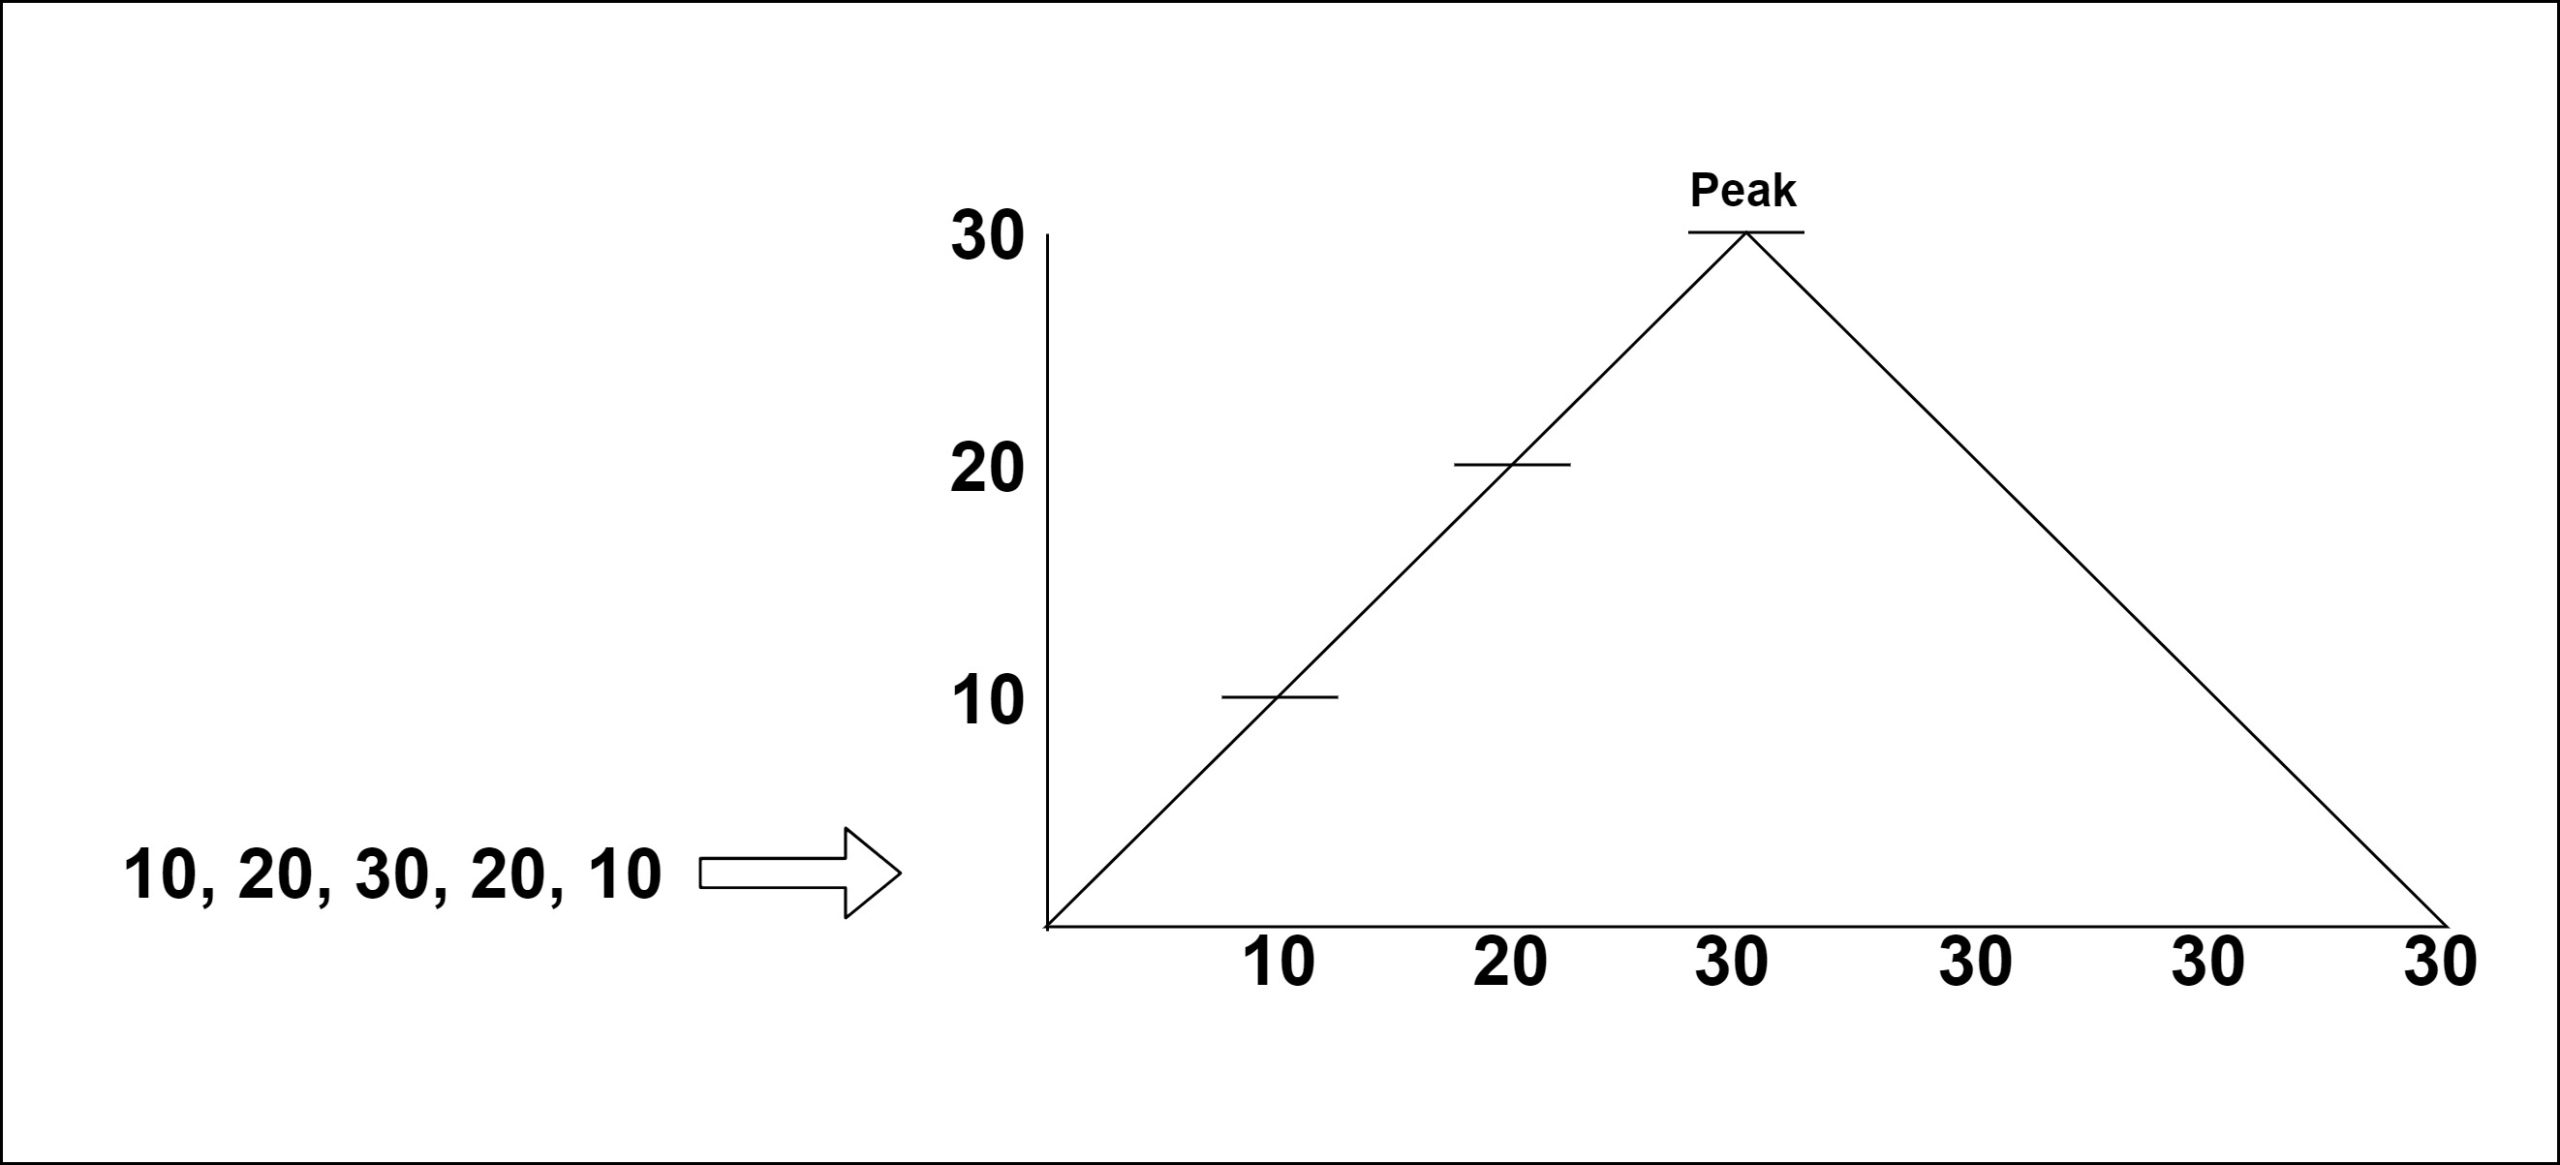 Peak Index in a Mountain Array